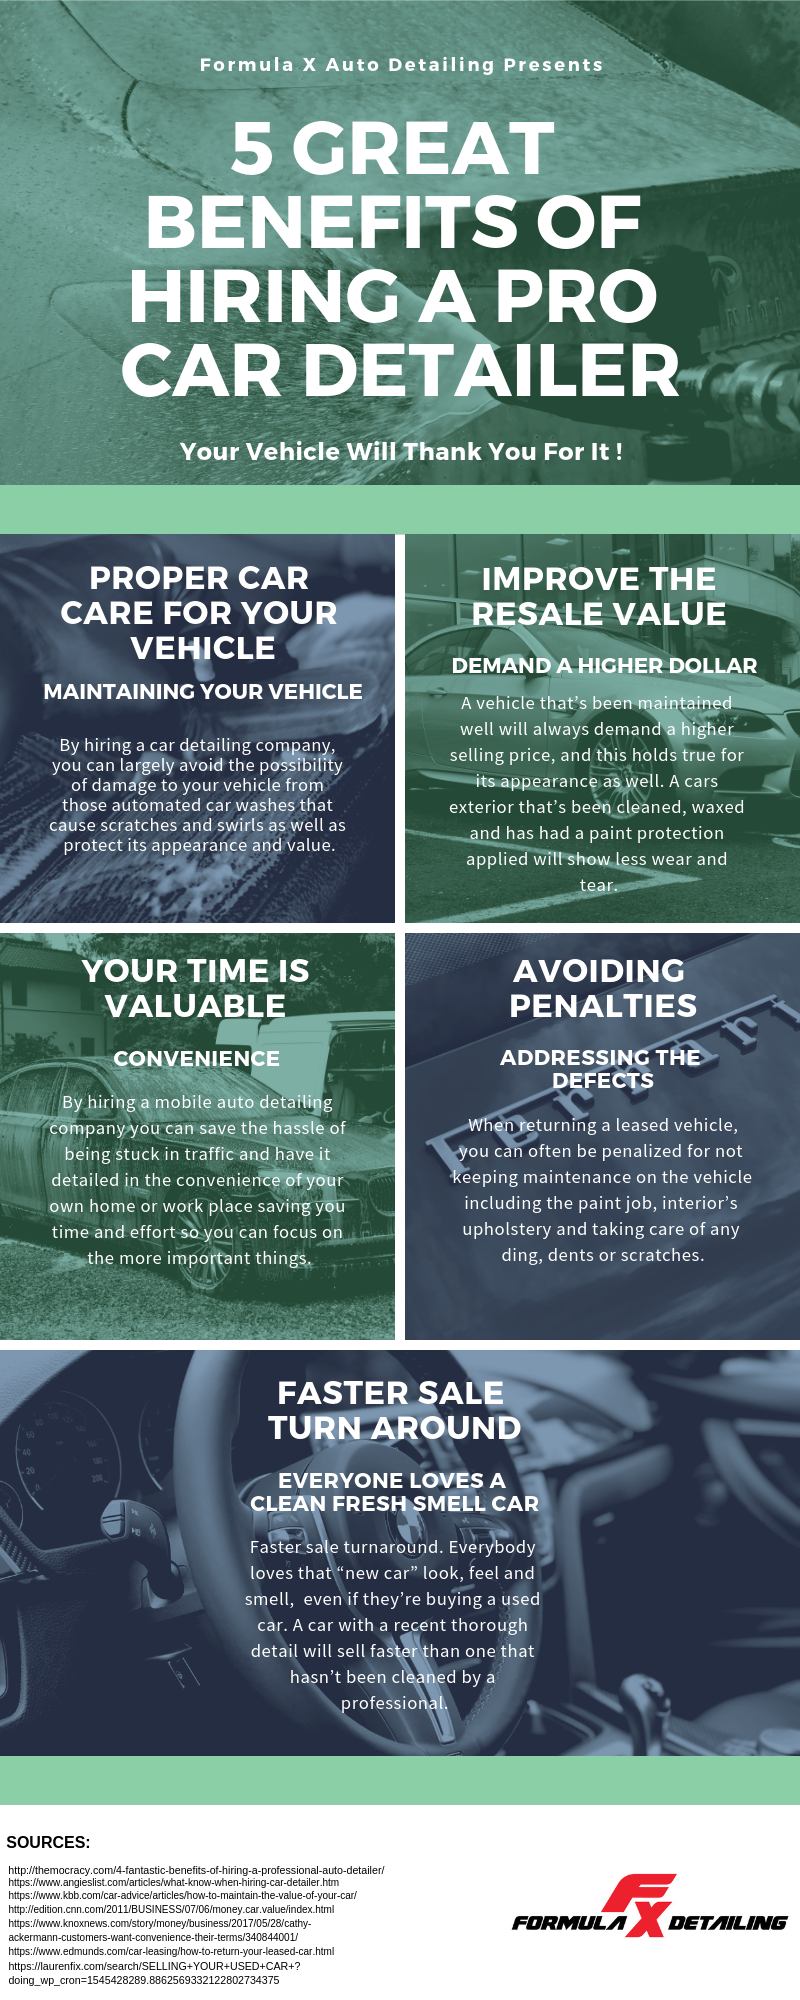 5 Great Benefits Of Hiring A Pro Auto Detailer (1).png